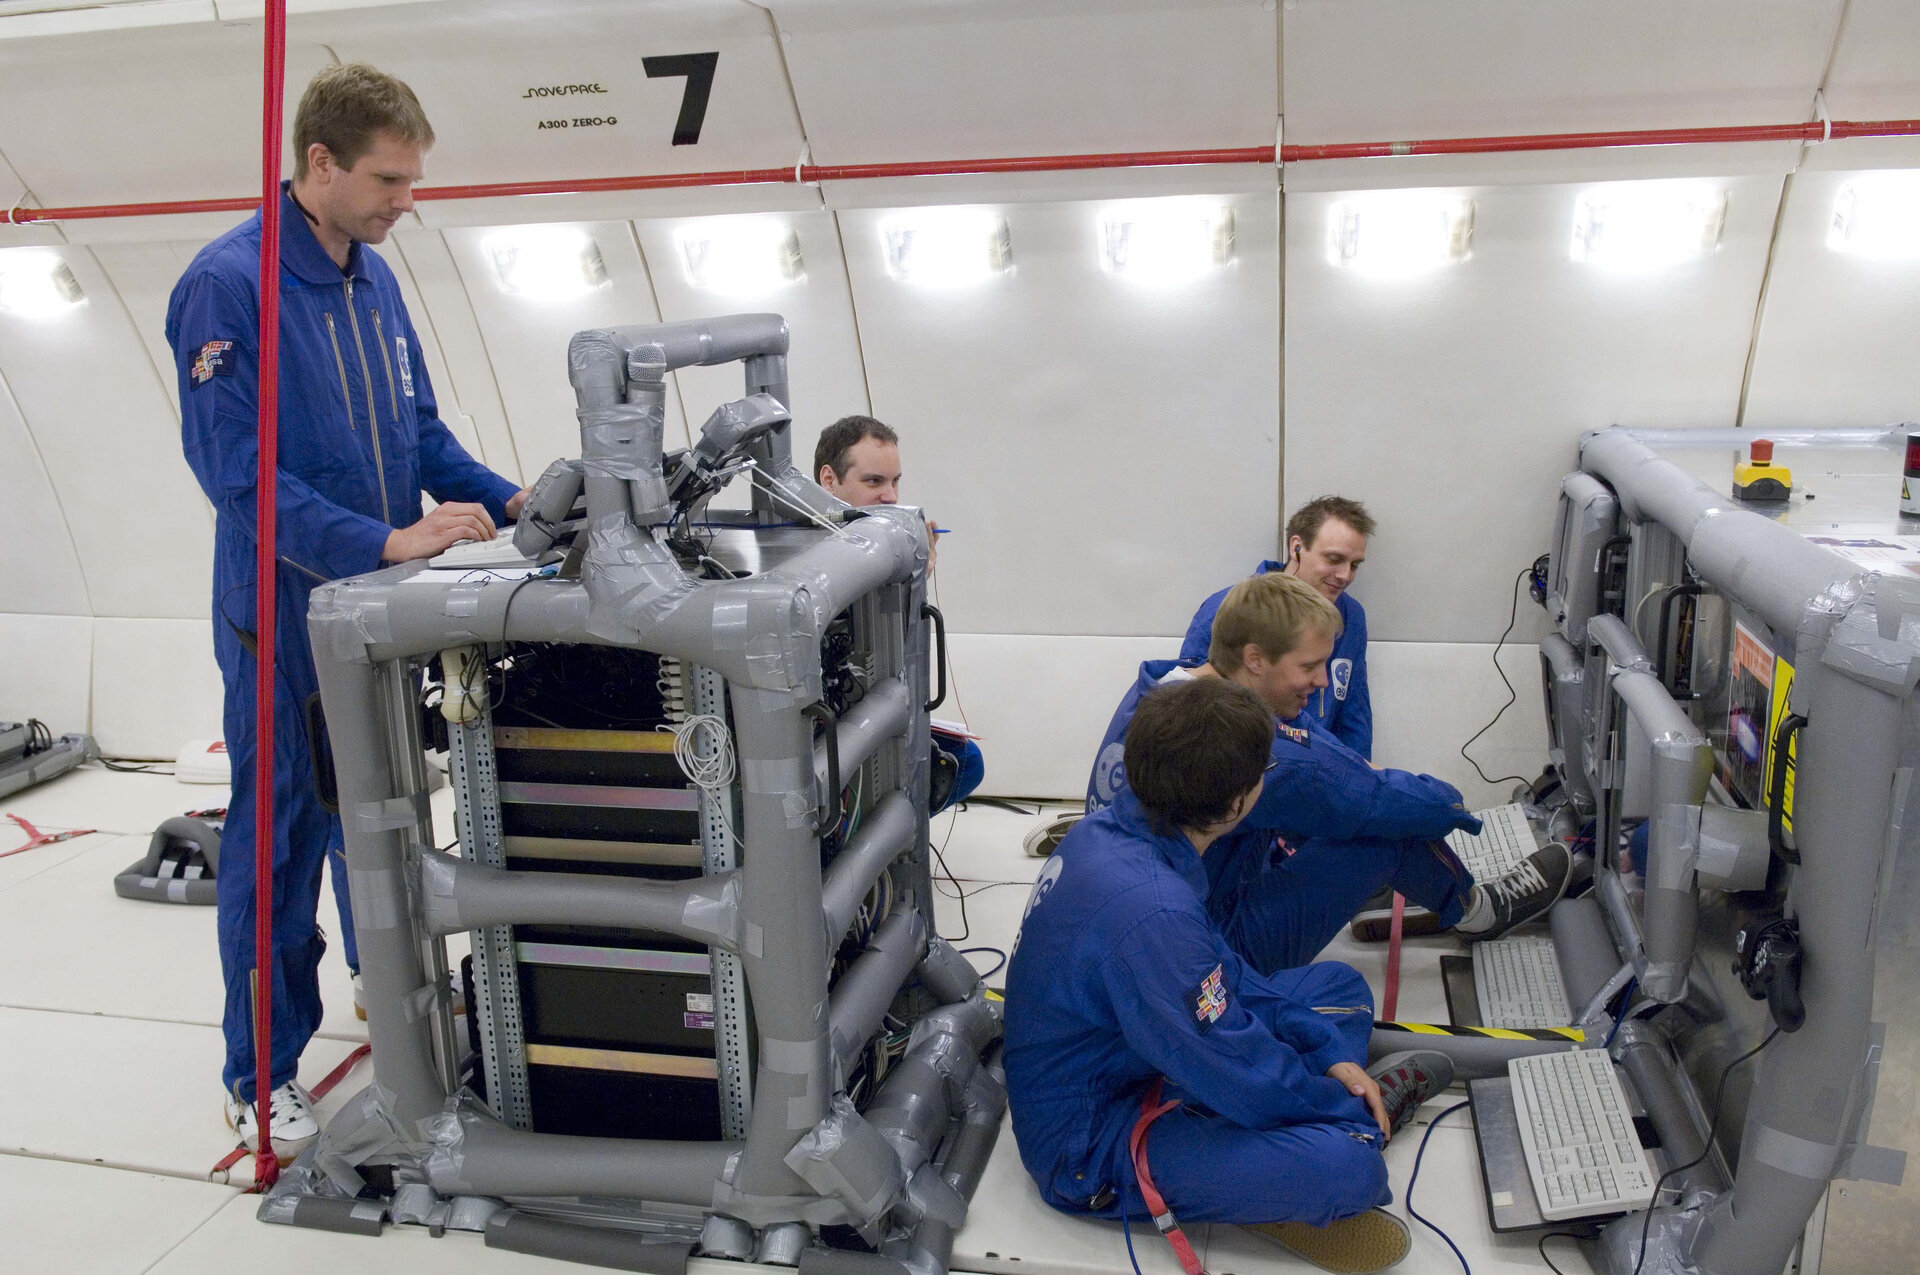 Preparations for flight day 1 of the 49th ESA Parabolic Flight Campaign